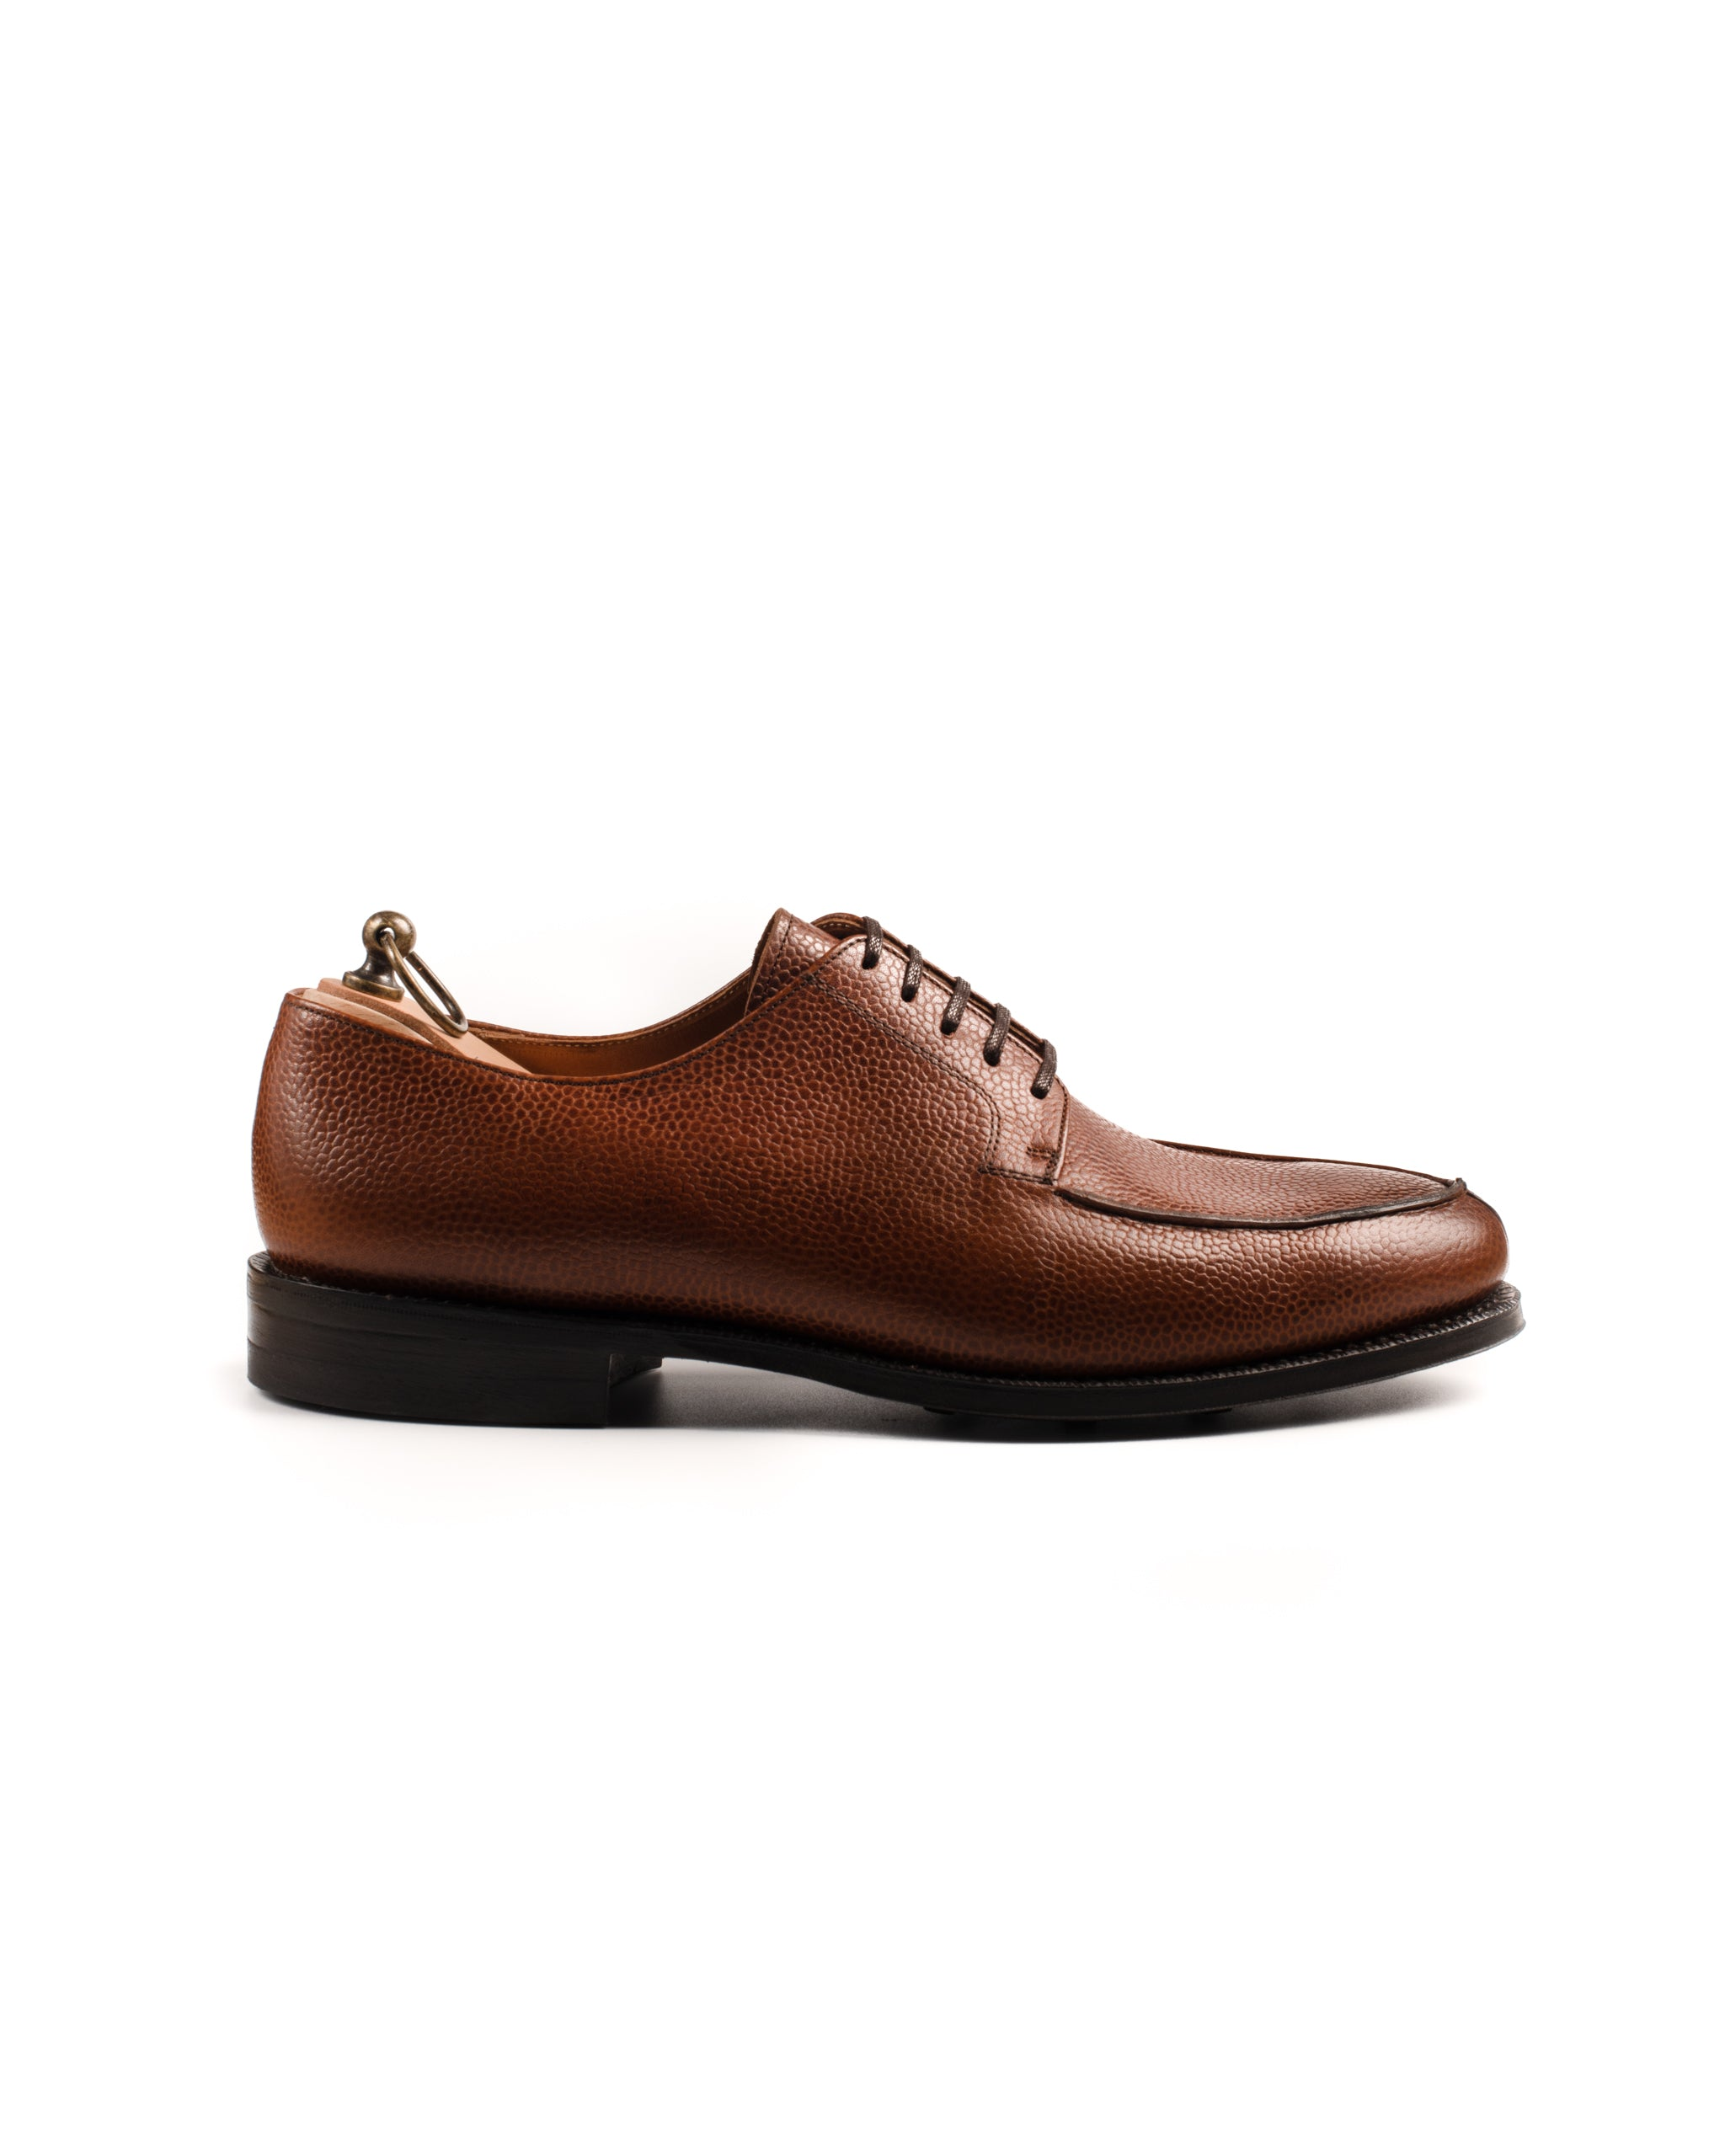 Norweger // Country Calf // Cognac // Dainite Sohle